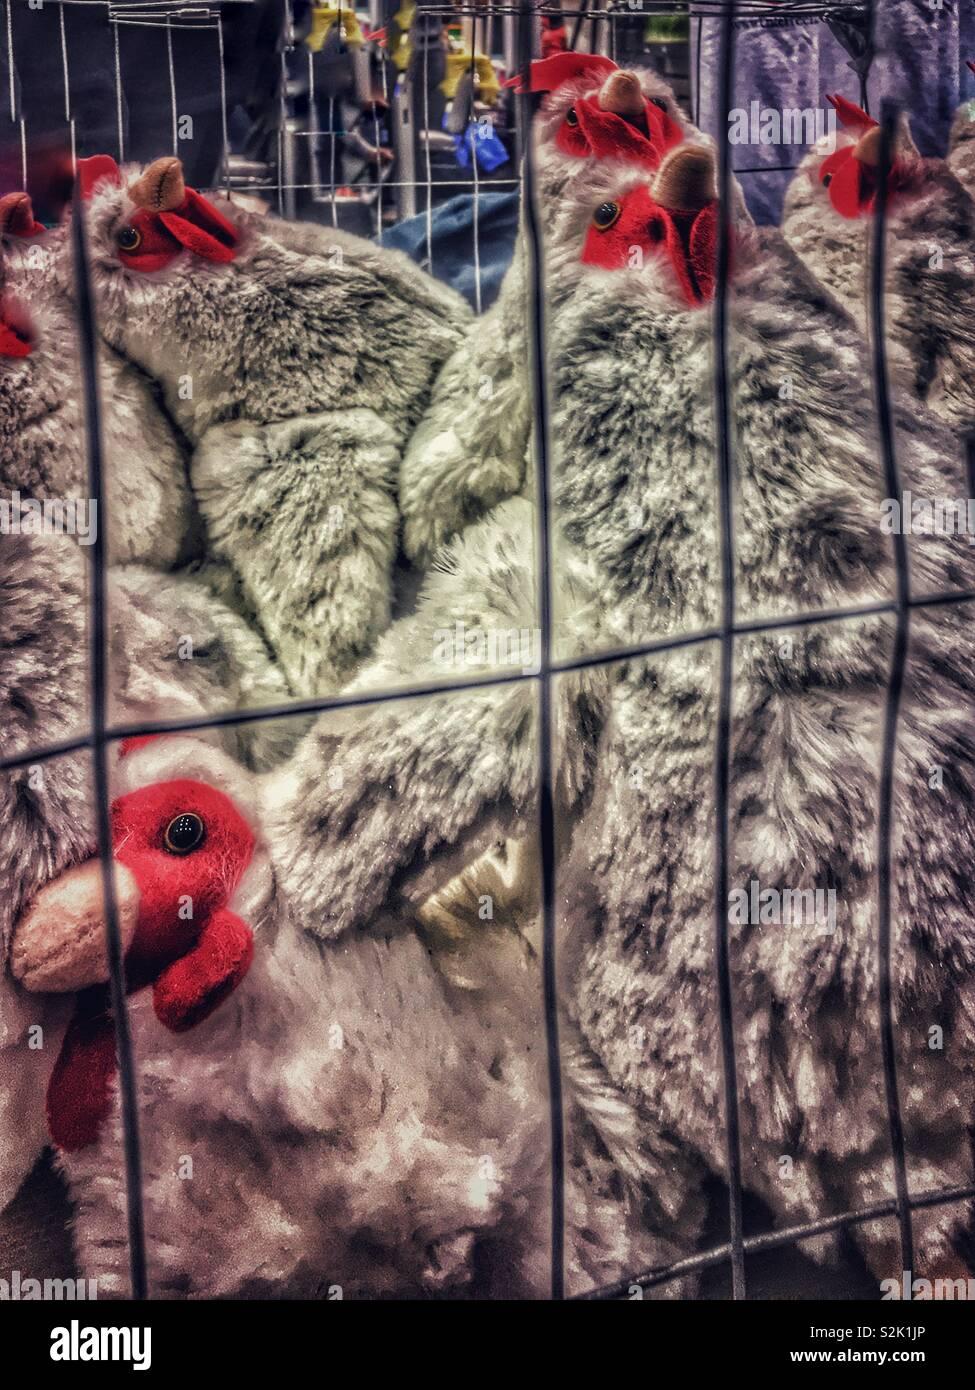 Pretend demonstration showing the unclean and overcrowded living conditions of chickens living in cages on poultry farms by placing too many pretend stuffed animal chickens in a wire cage. - Stock Image